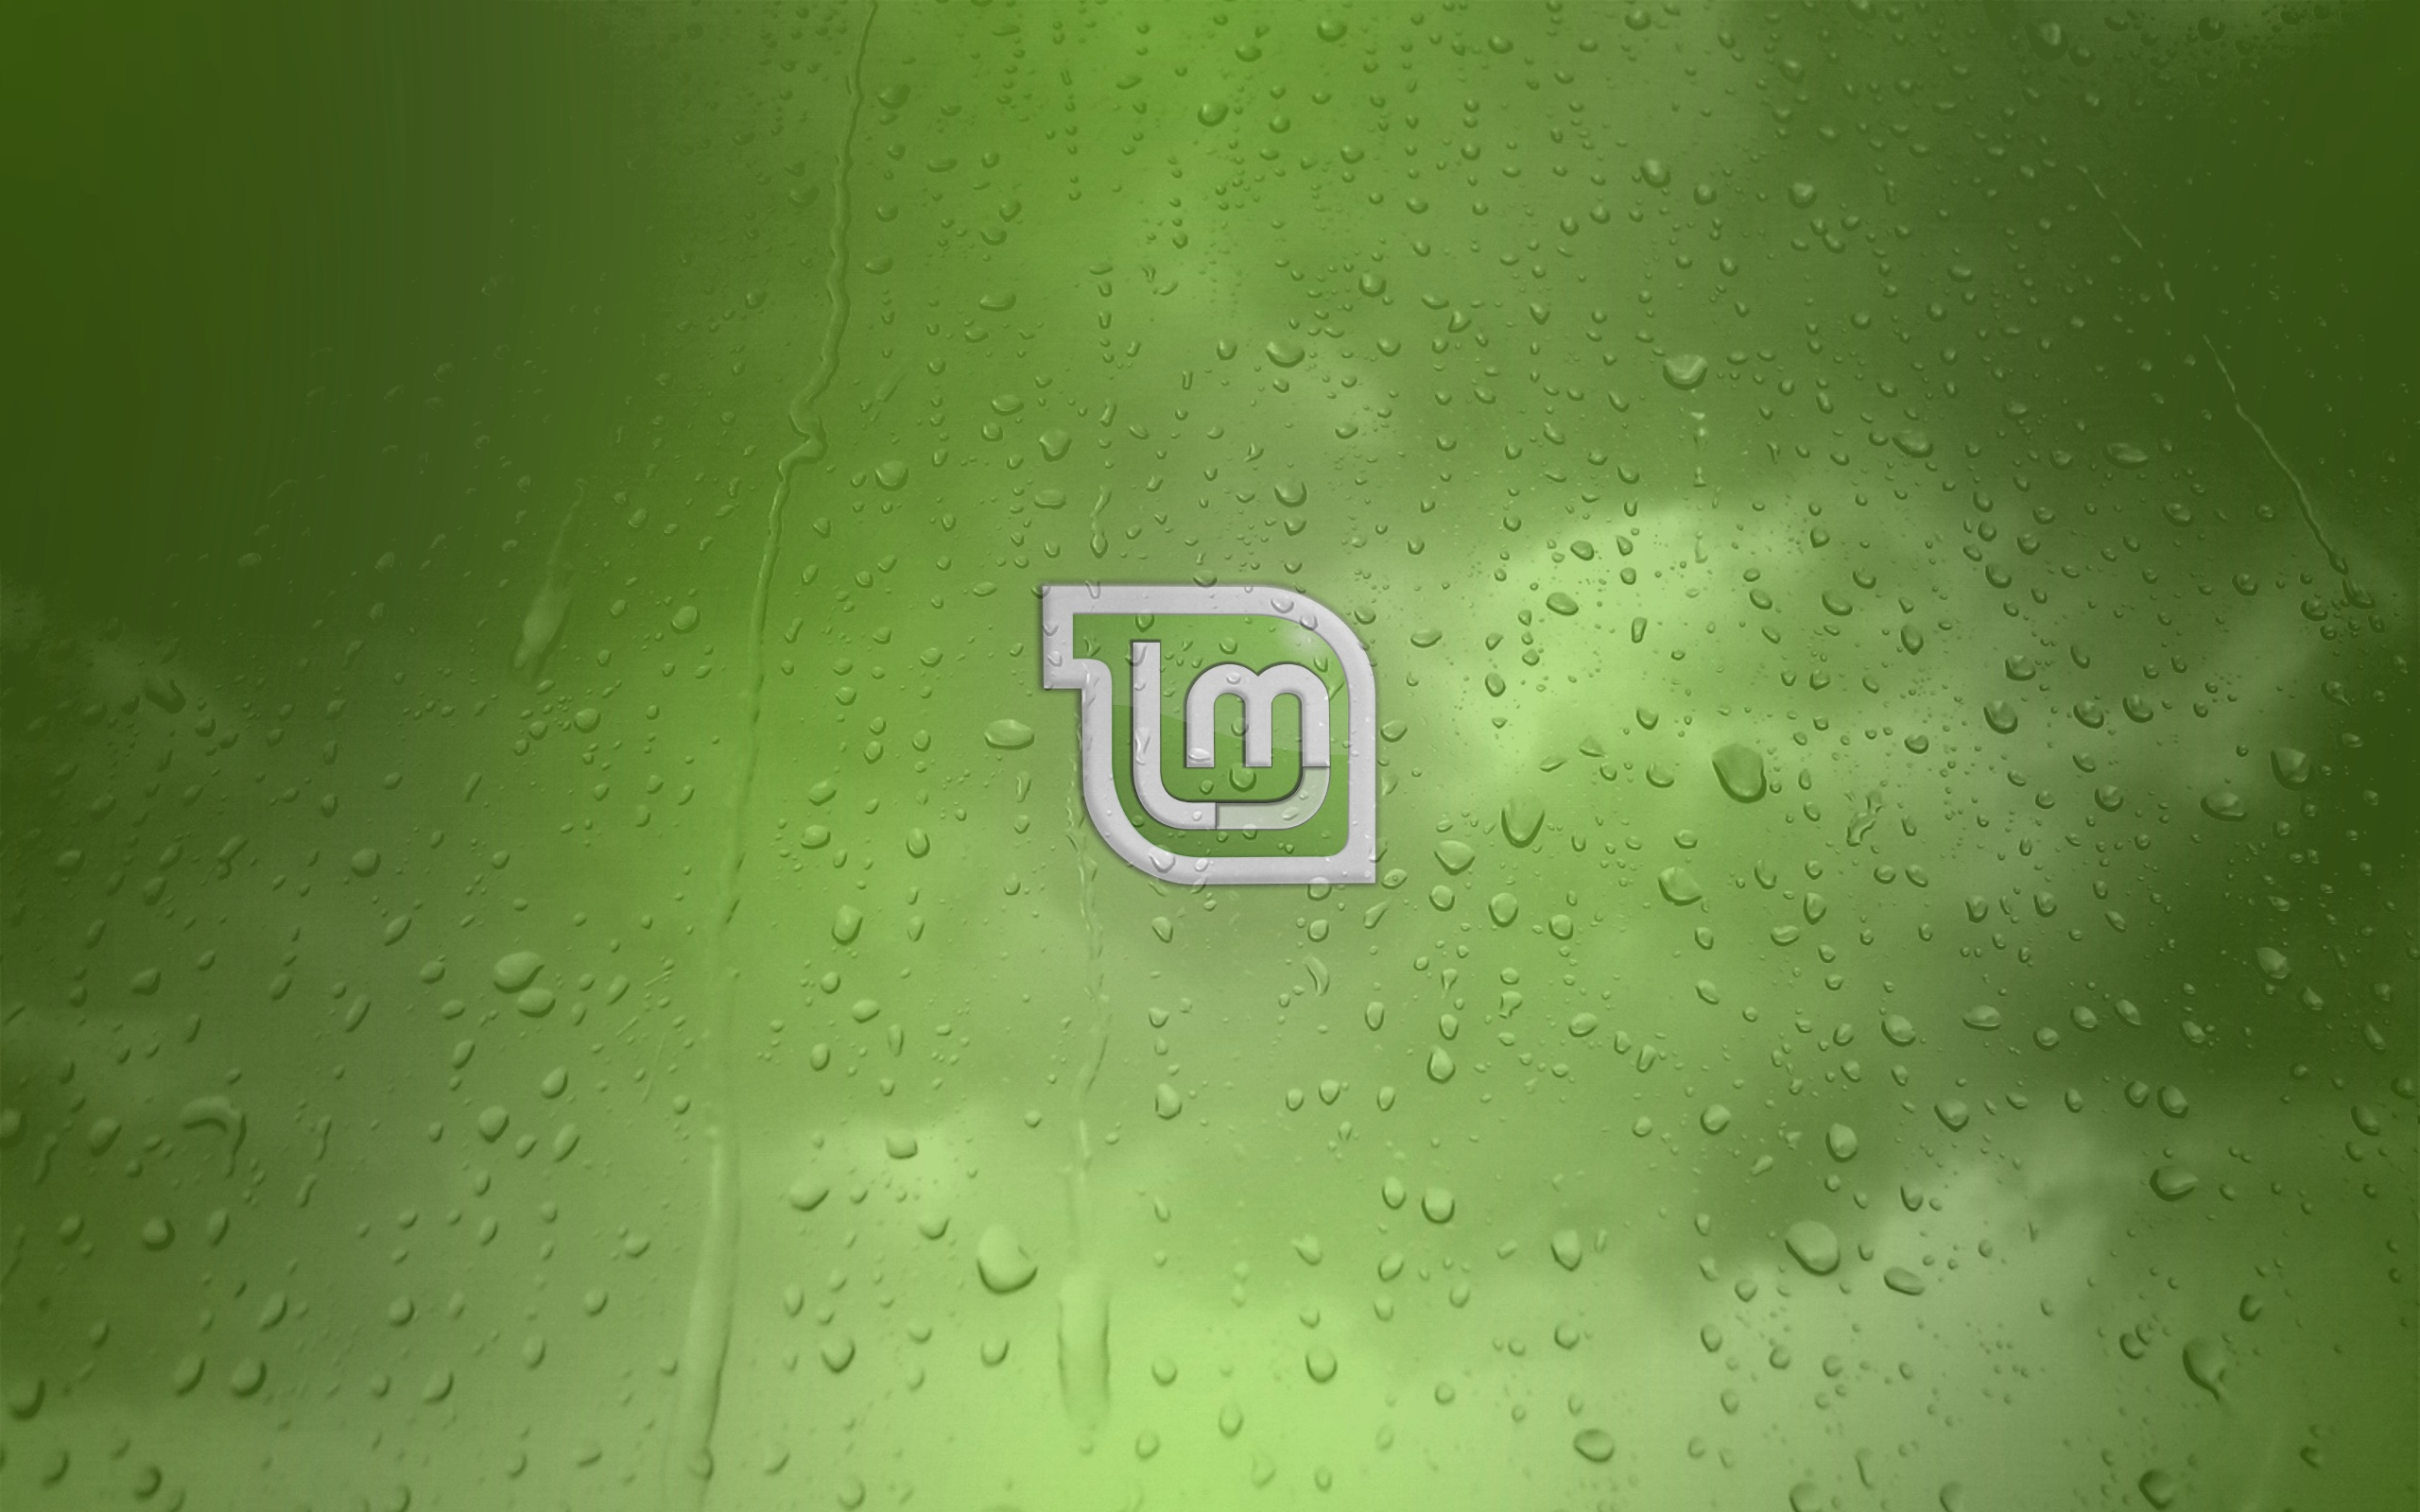 Linux mint Awesome Wallpapers 2560x1600